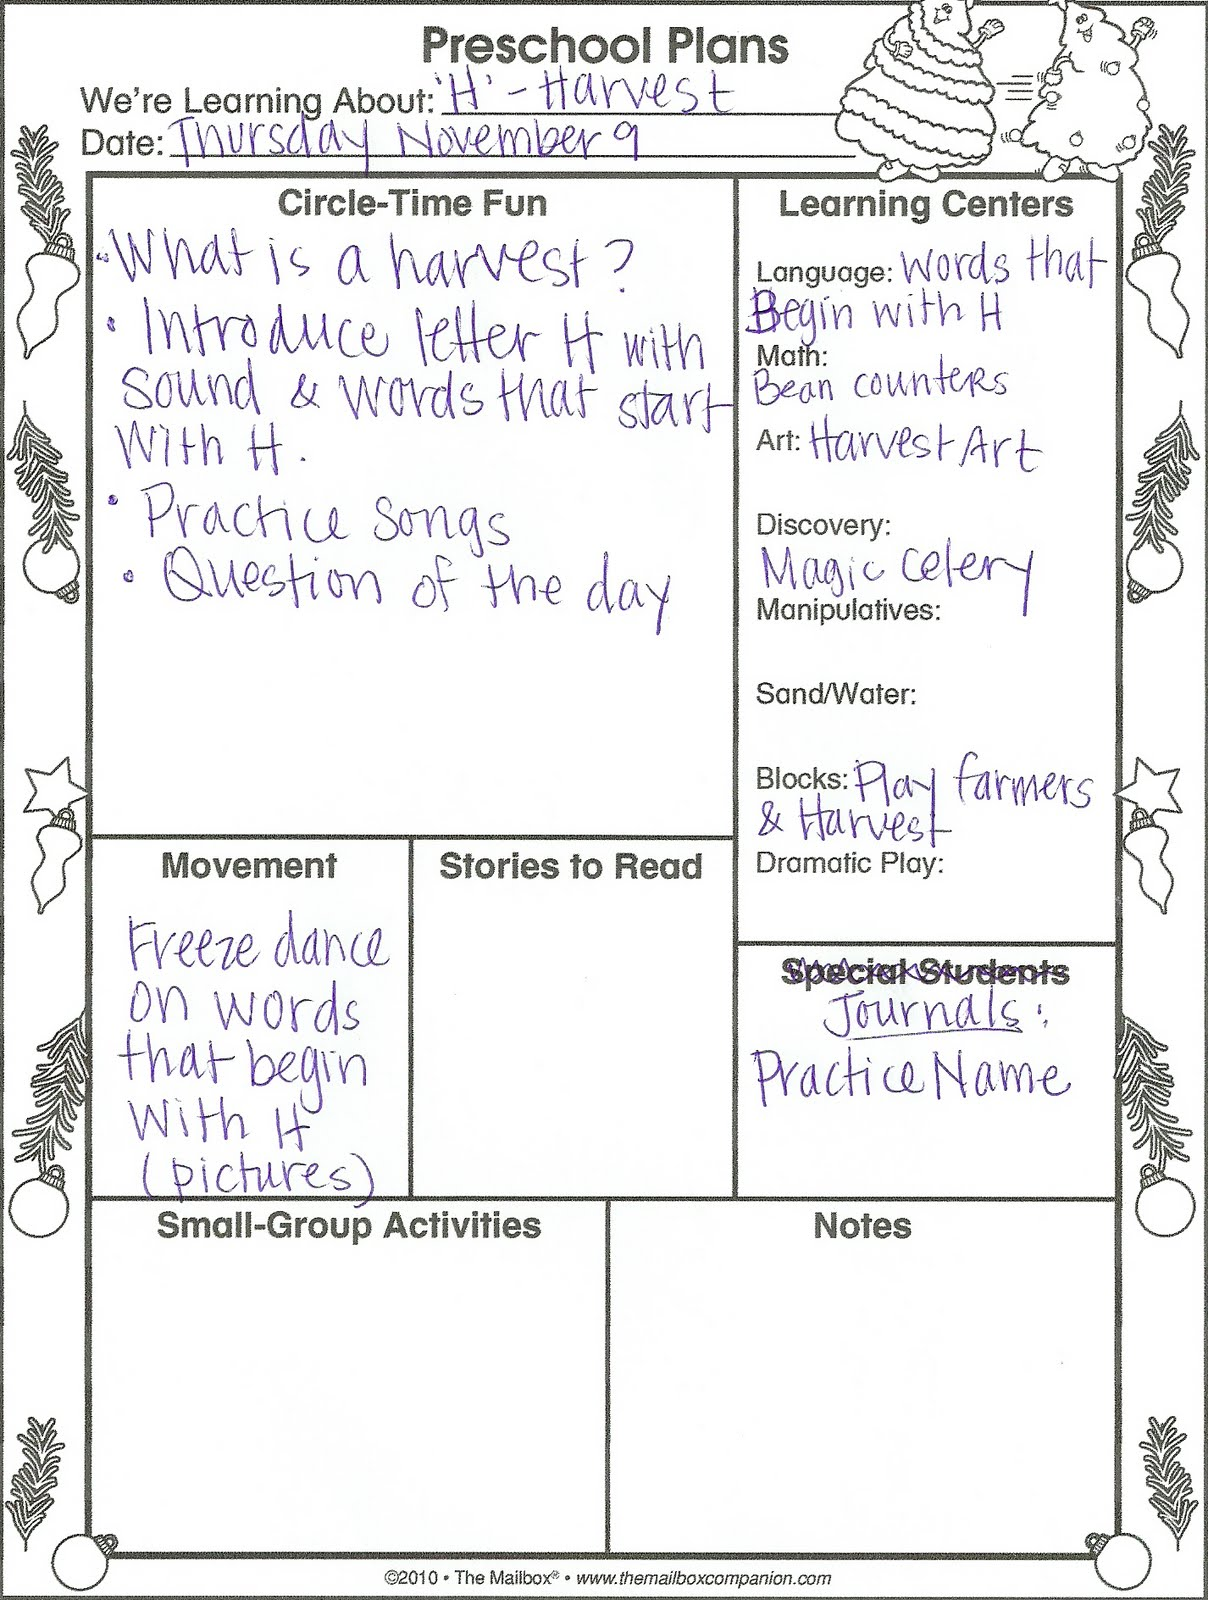 Discovery Days Preschool Lesson Plans